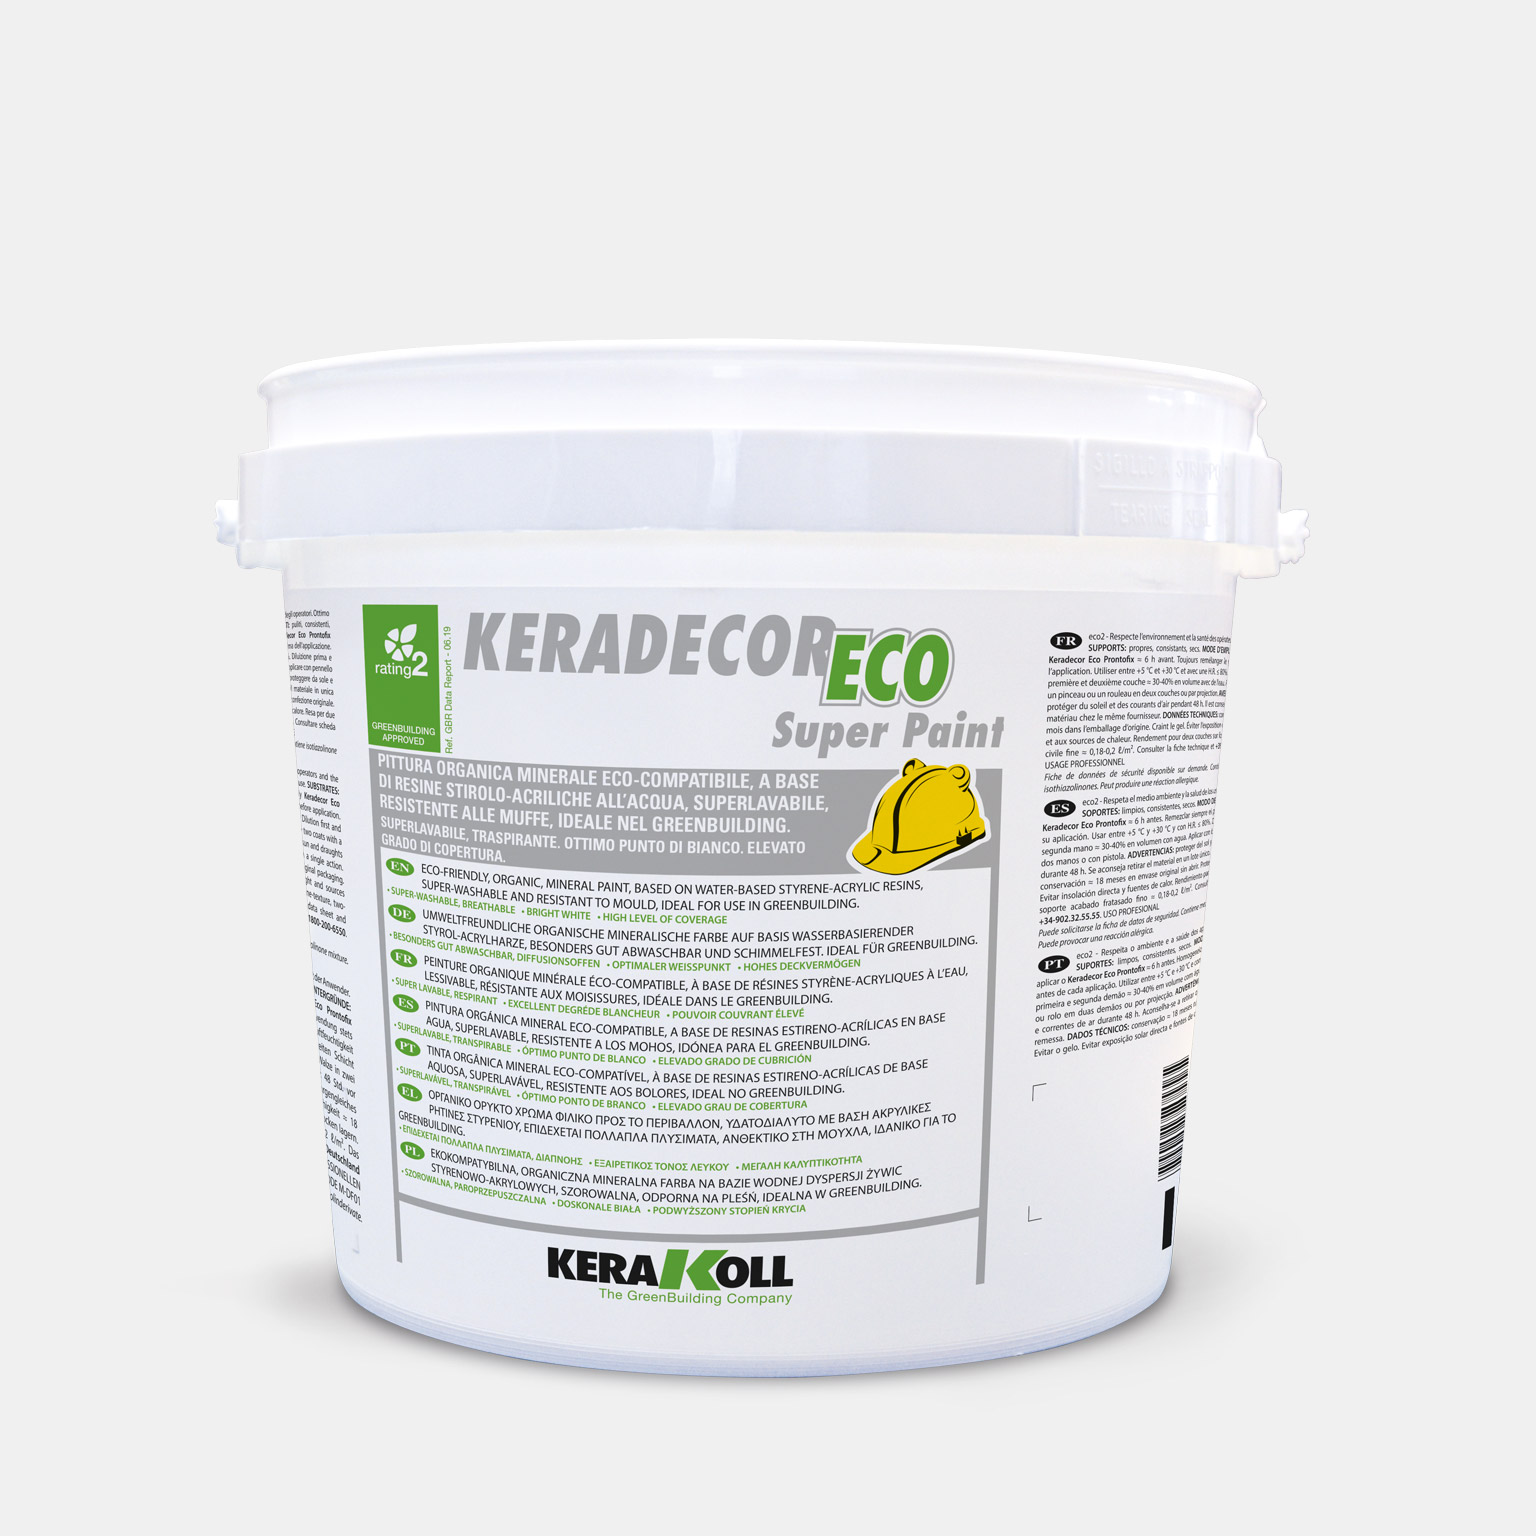 Keradecor Eco Super Paint - immagine pack